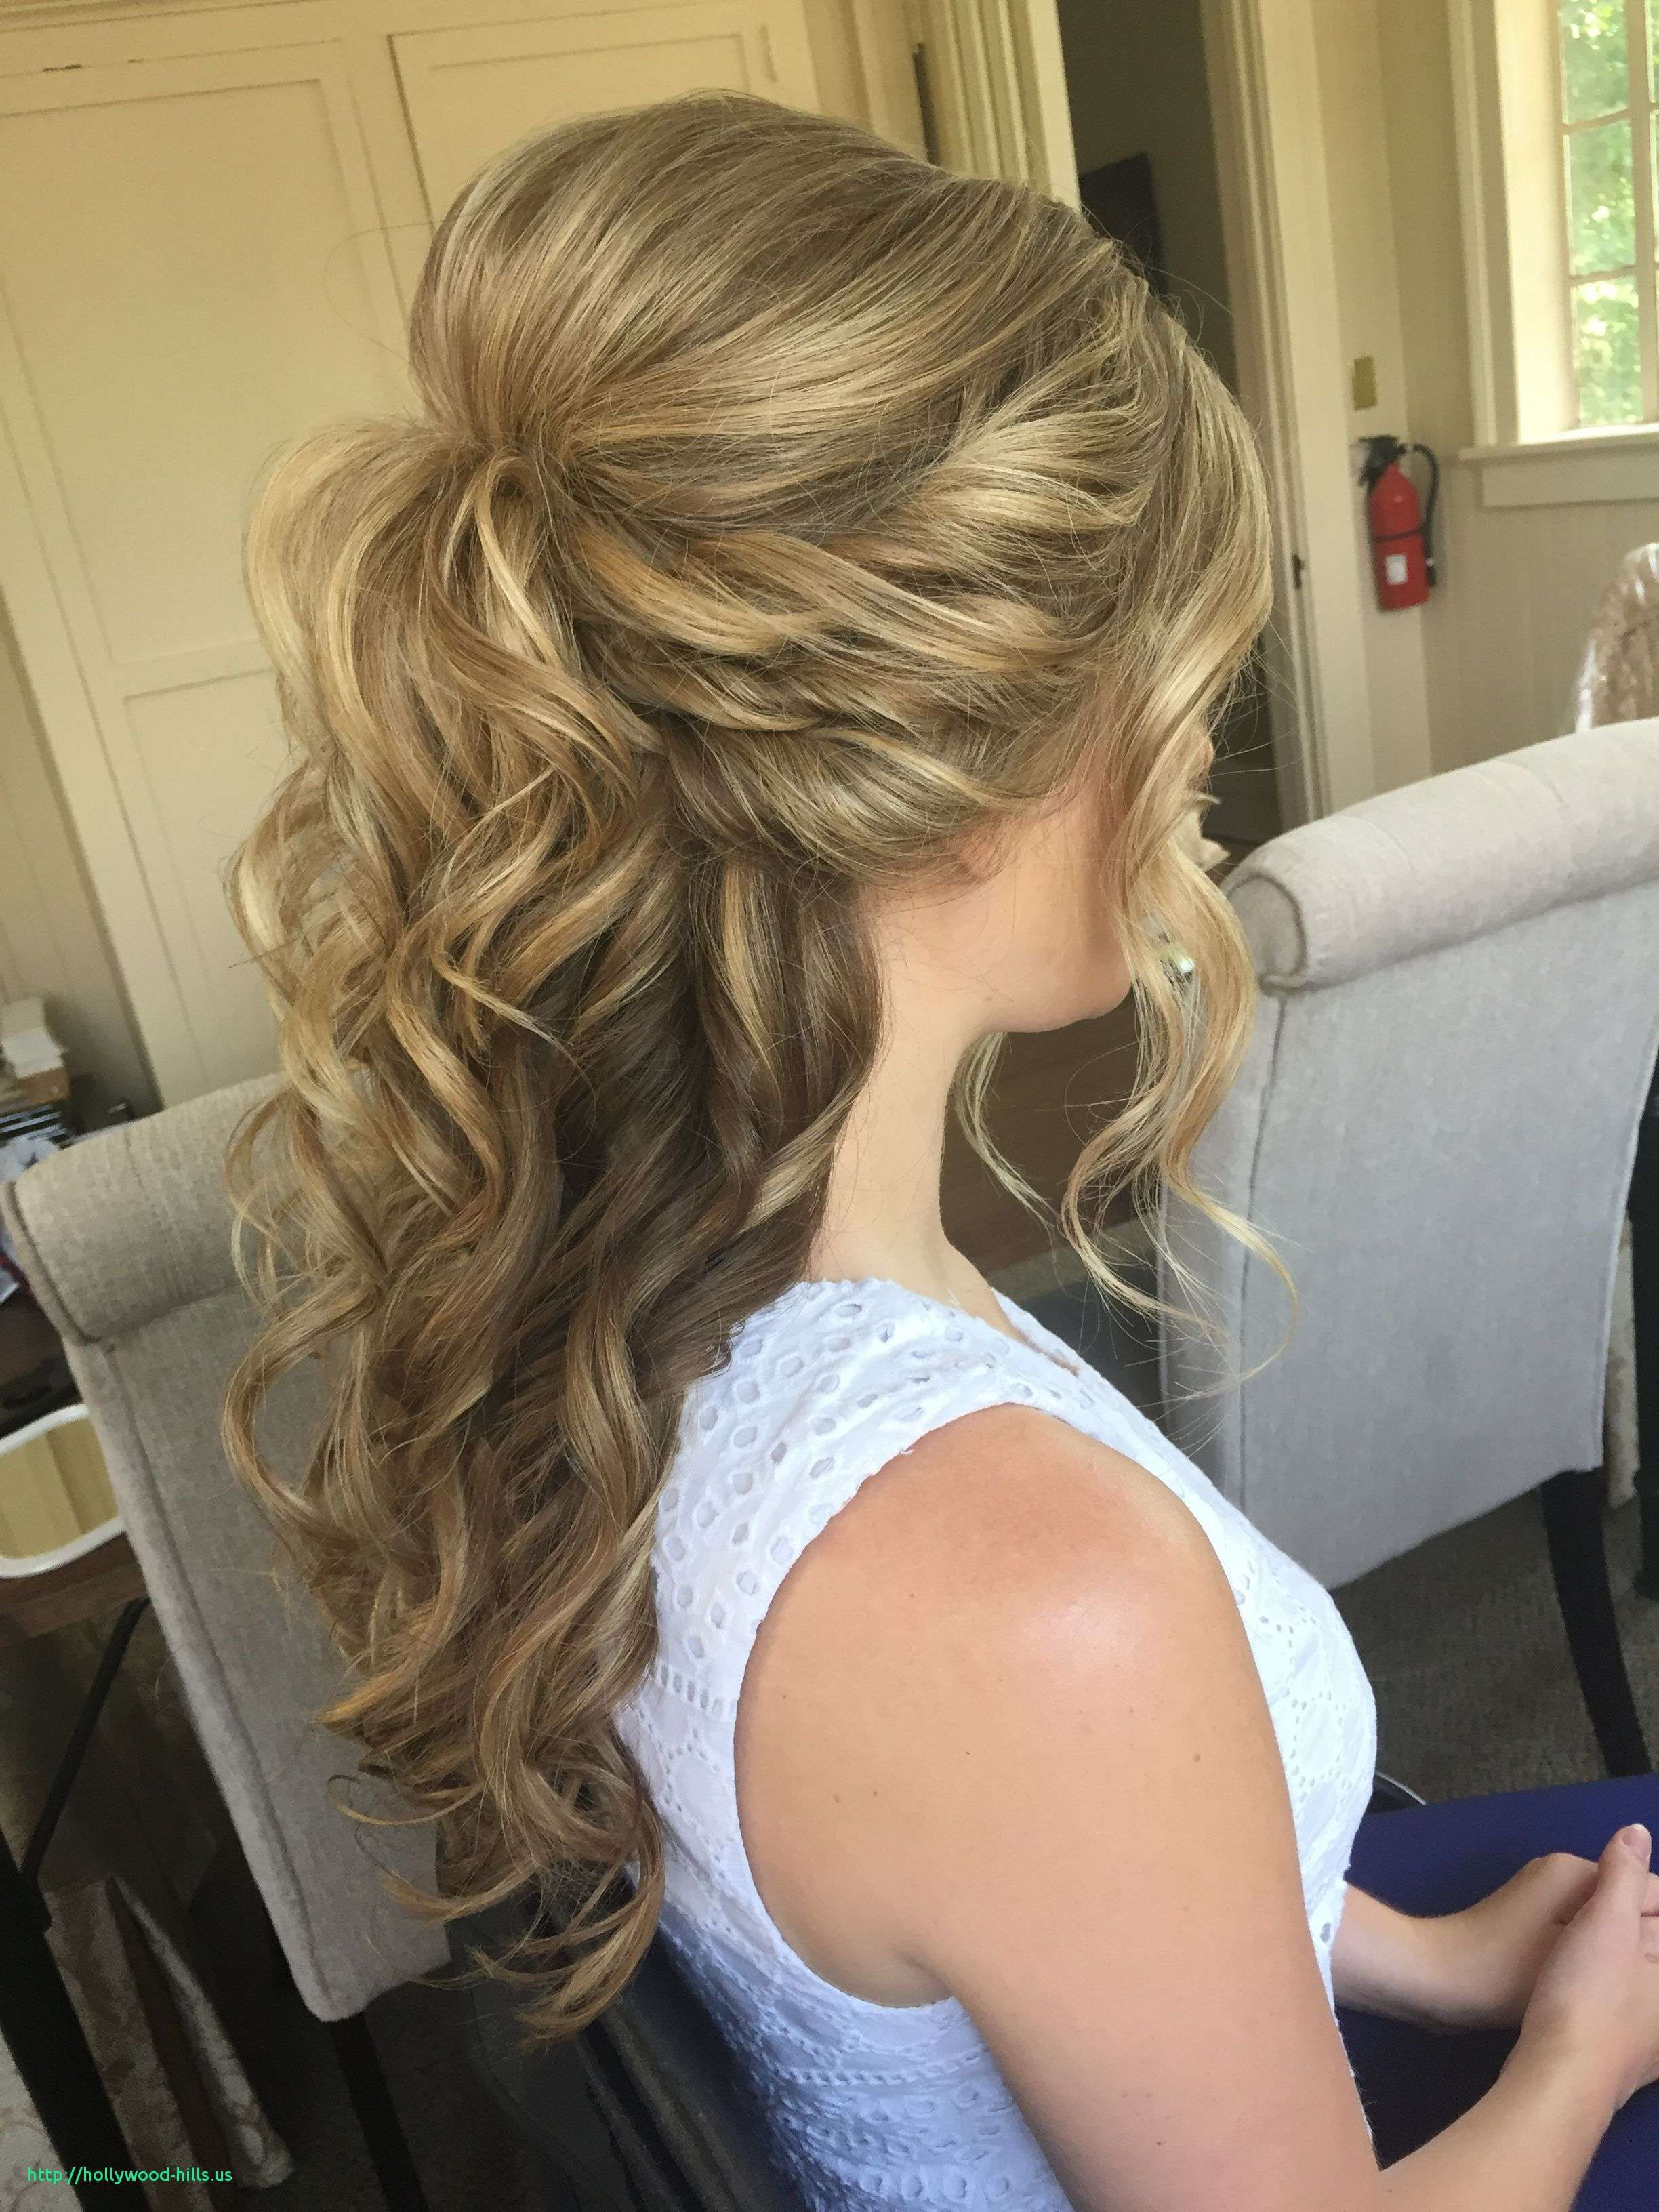 Mother Of The Bride Hairstyles For Medium Length Hair Google Search Long Hair Wedding Styles Wedding Hair Half Homecoming Hairstyles